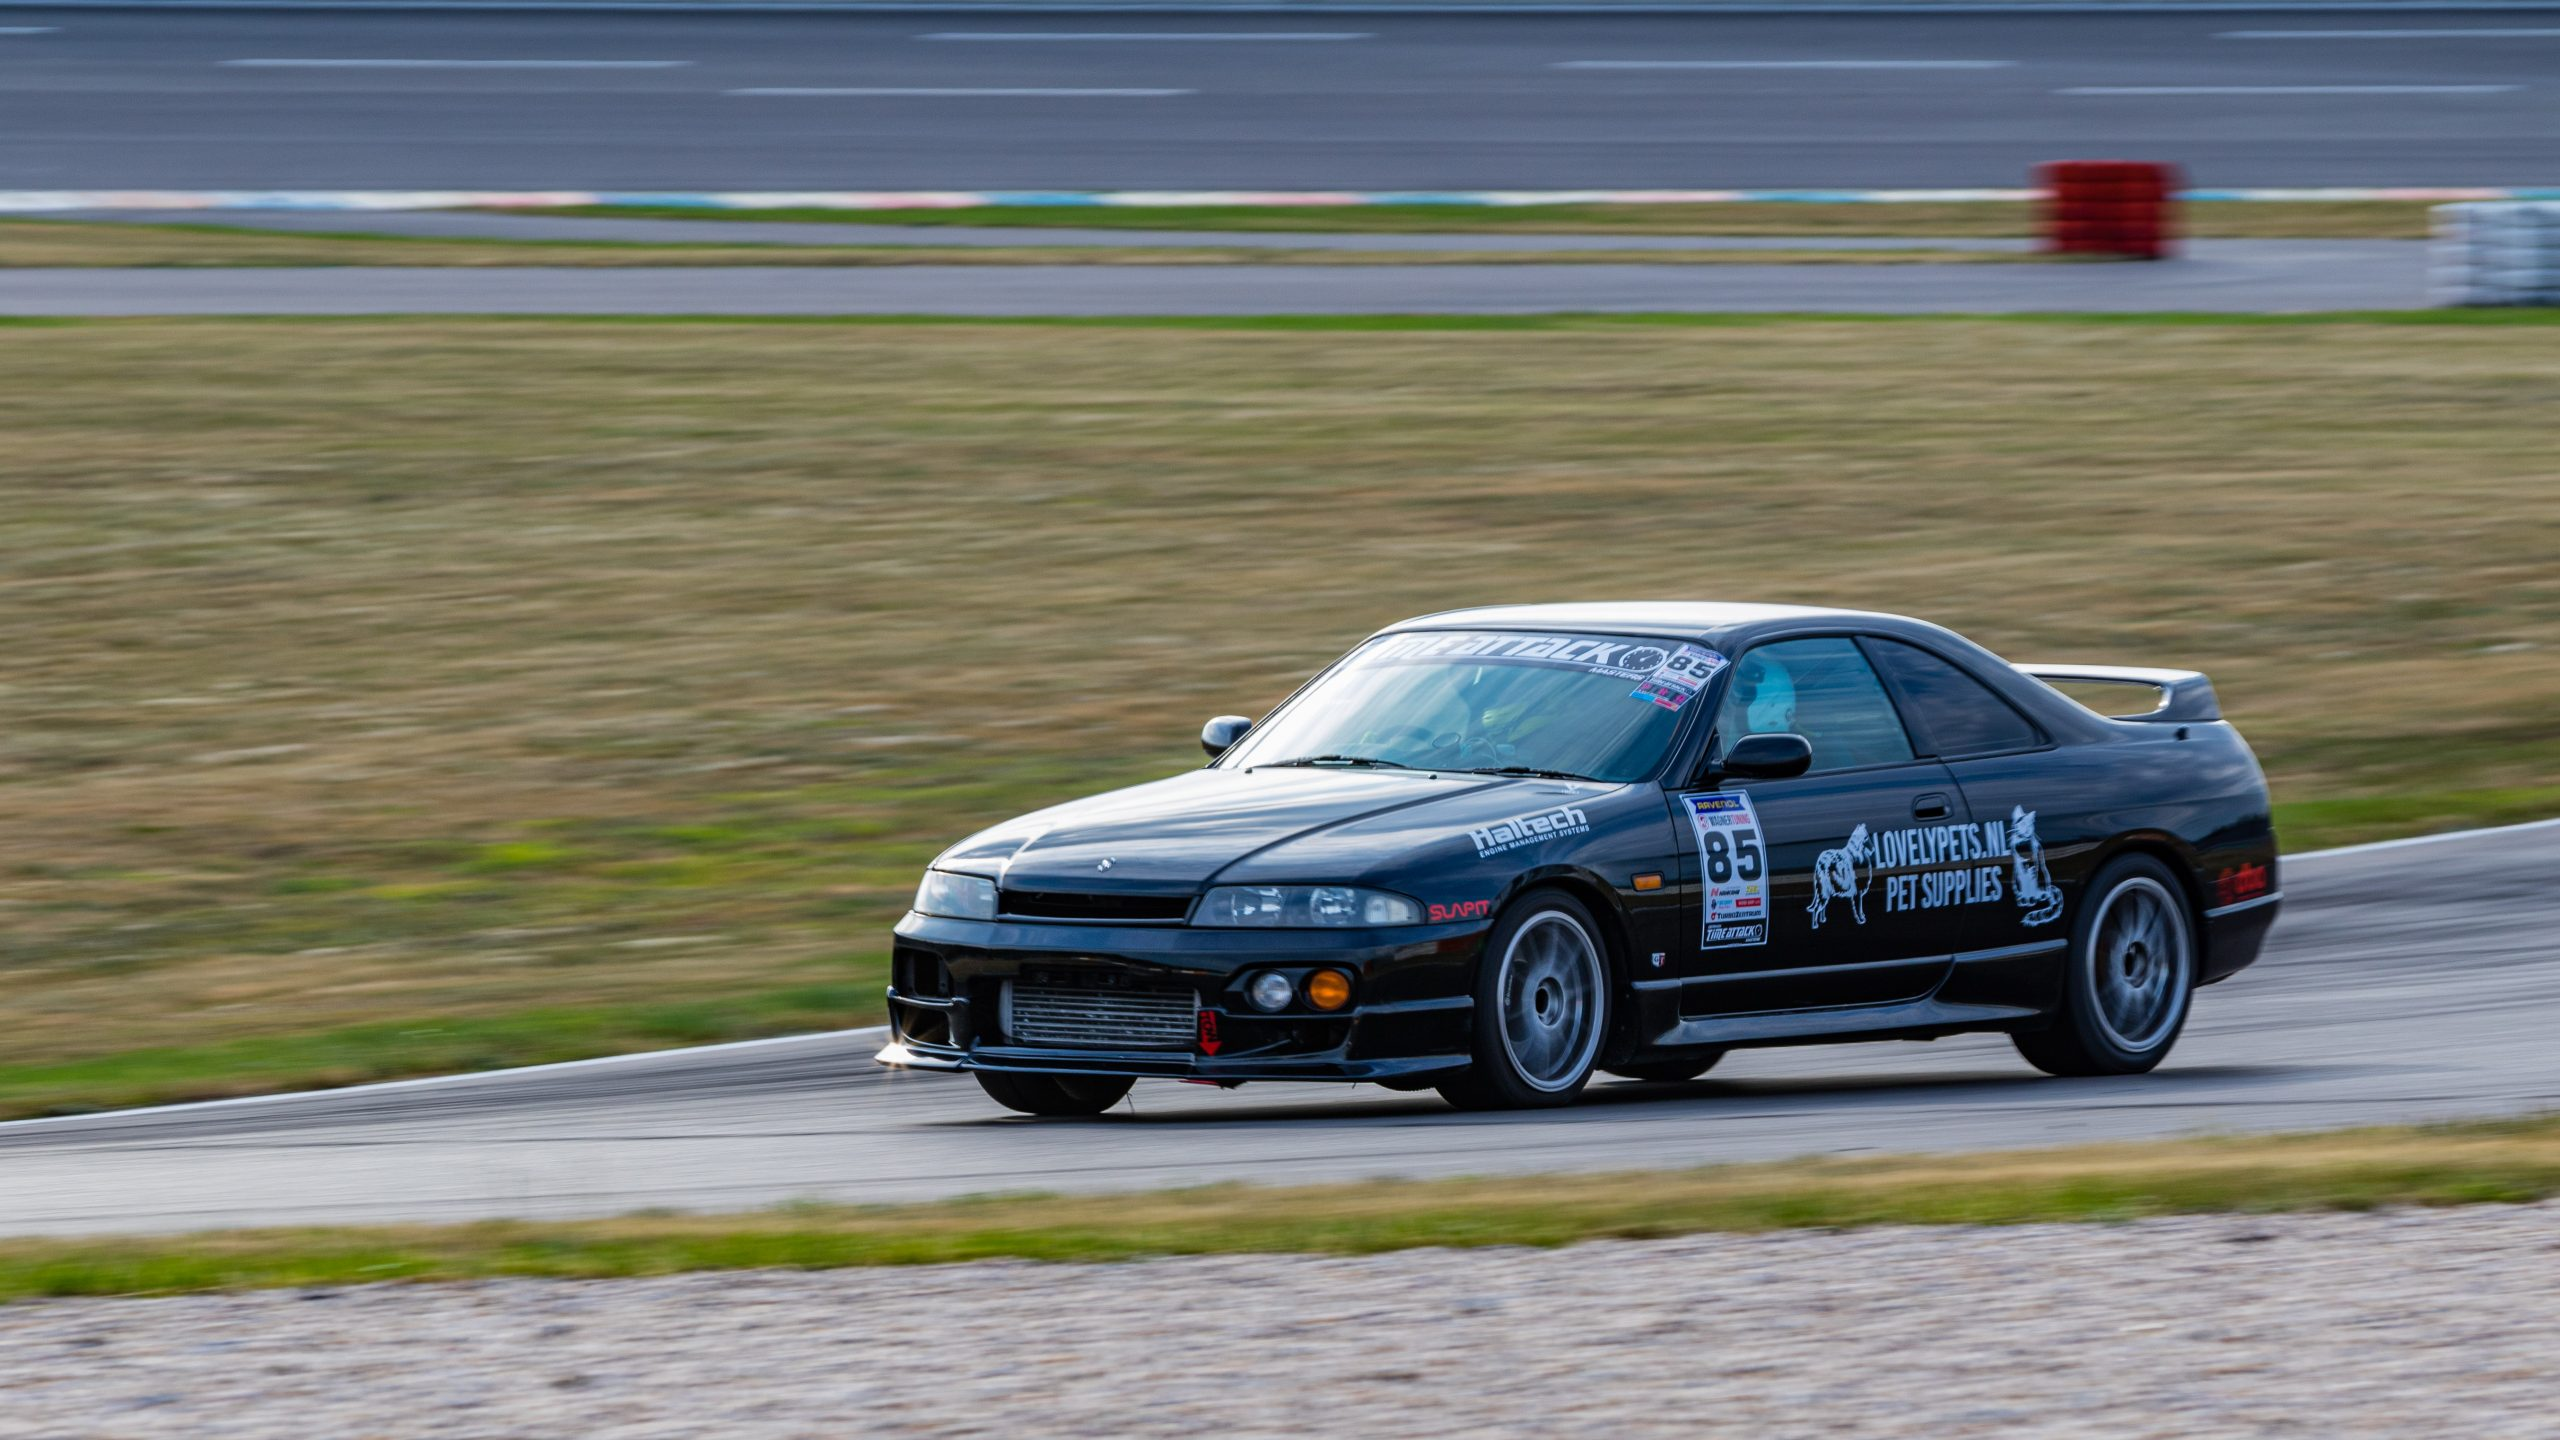 Torsij Motorsport at reisbrennen competing in the german time attack masters at the lauzitring